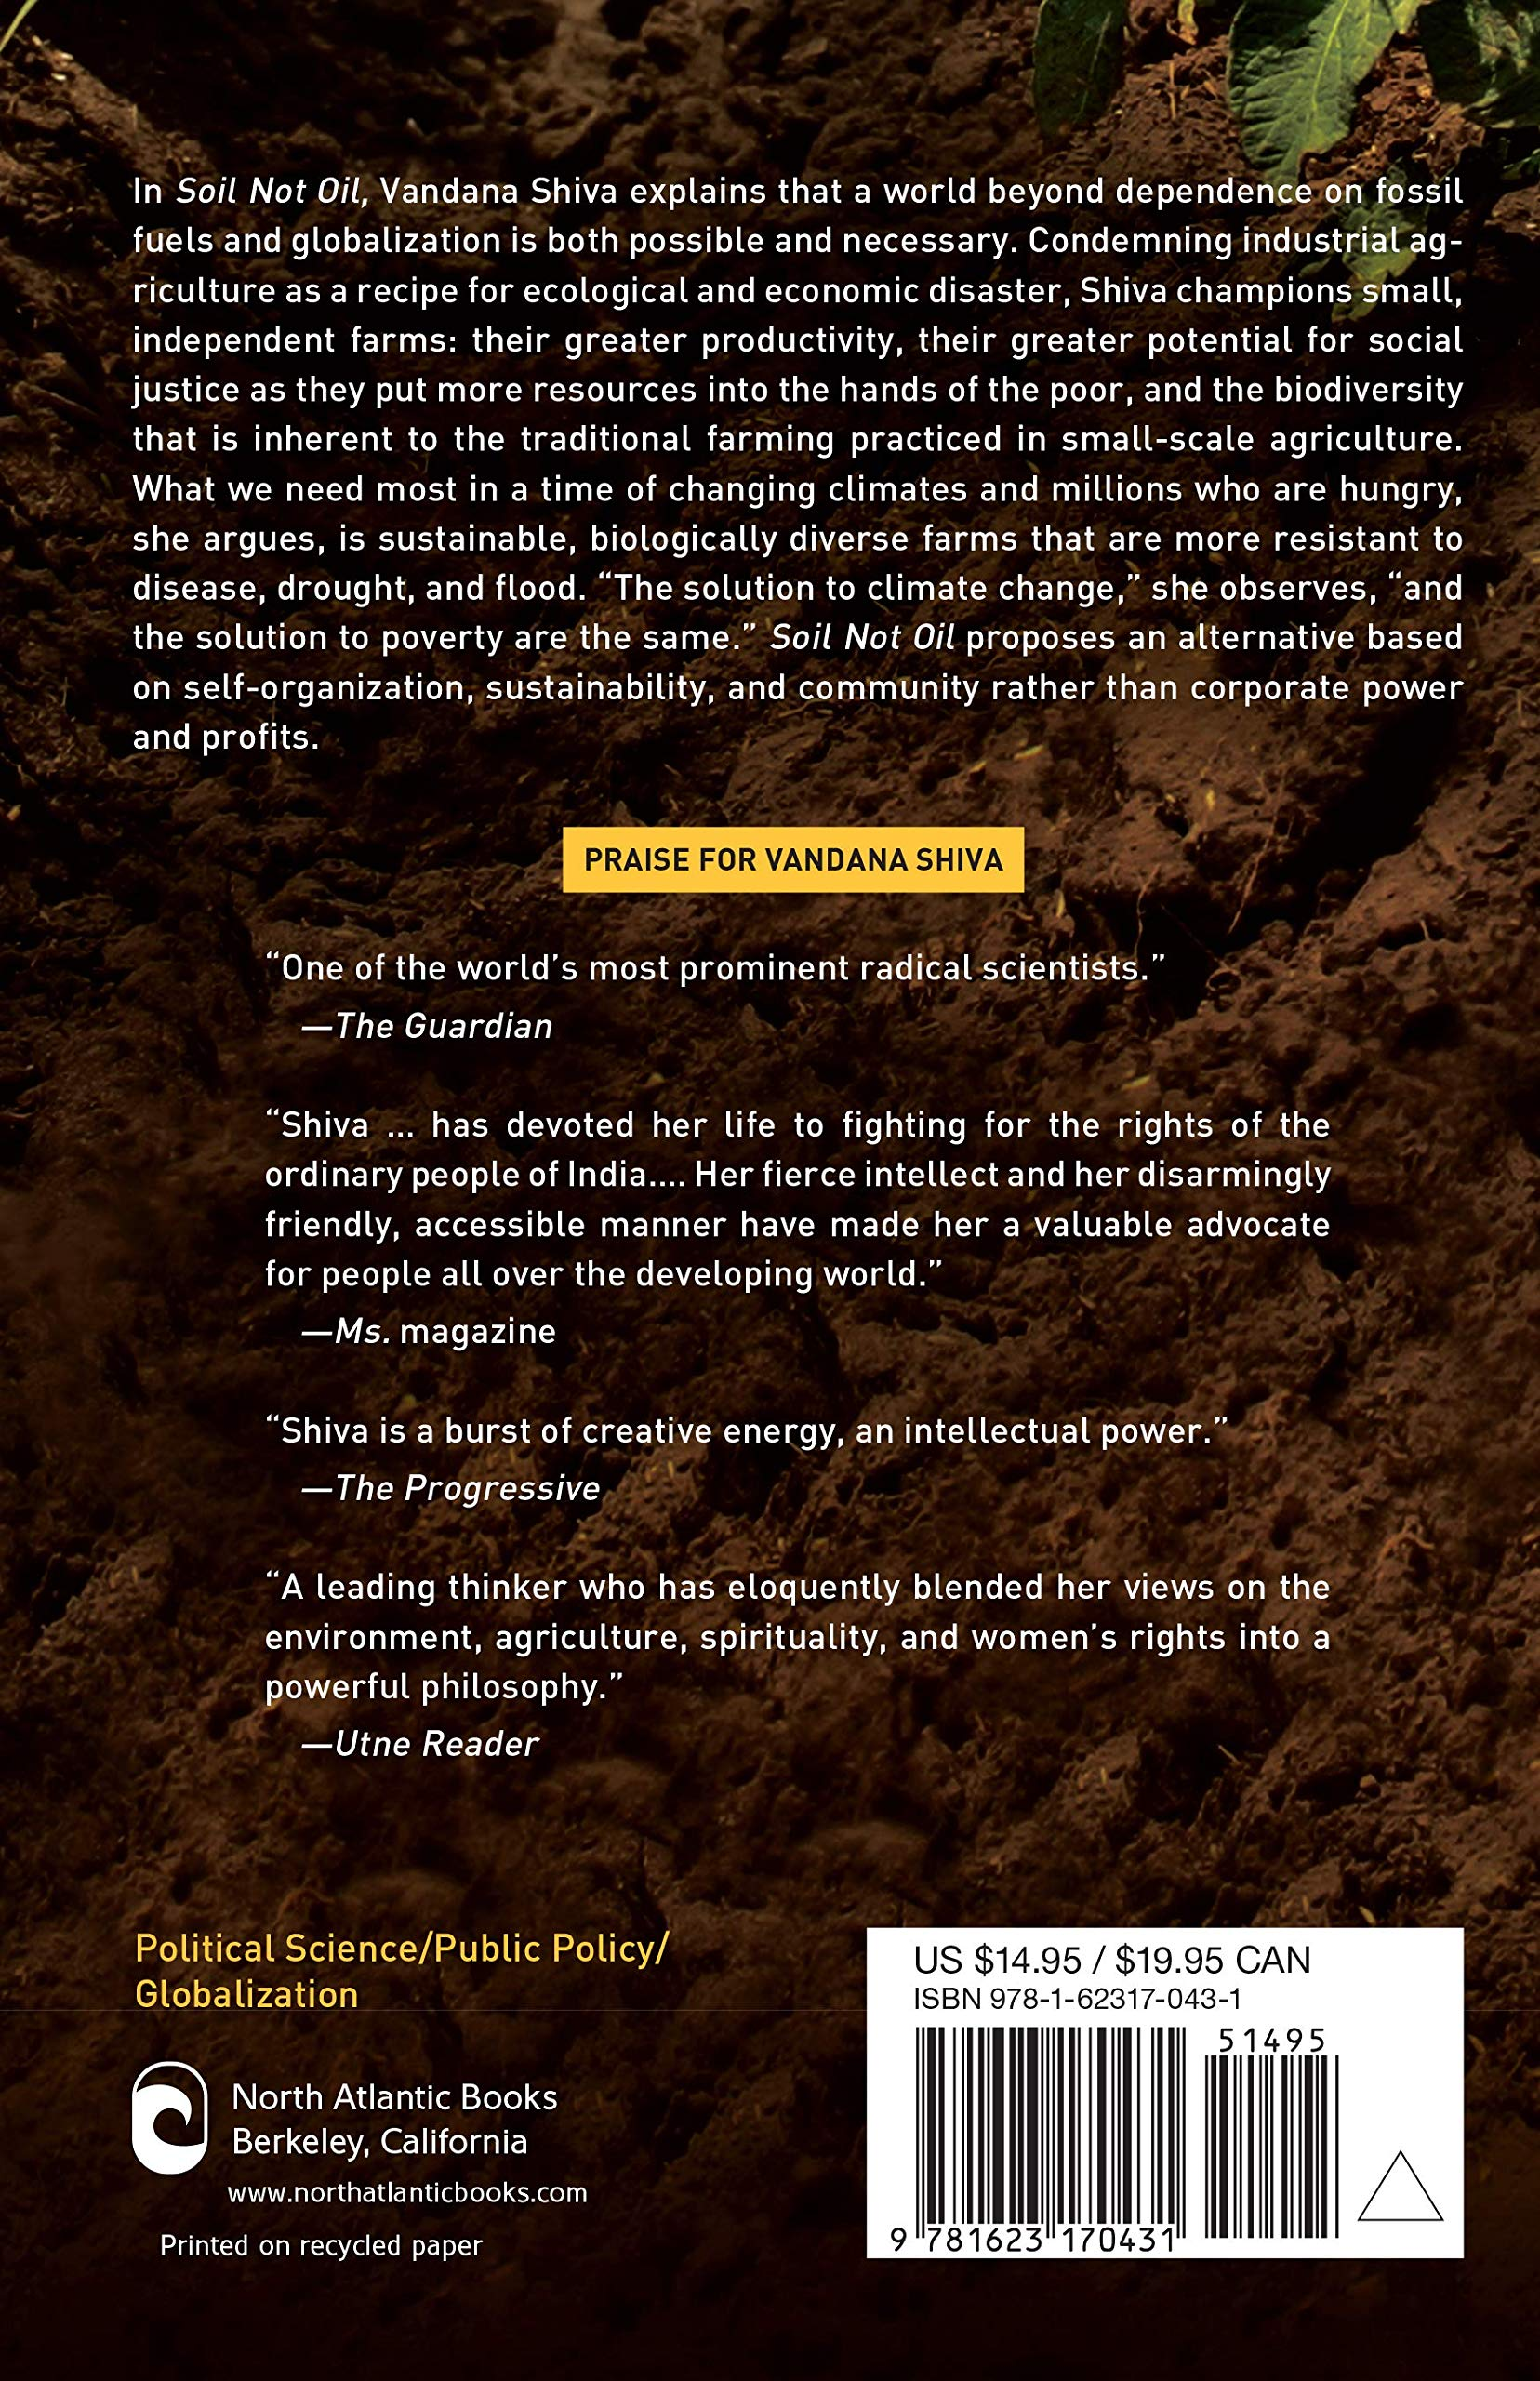 5a671f010 Amazon.com: Soil Not Oil: Environmental Justice in an Age of Climate Crisis  (9781623170431): Vandana Shiva: Books